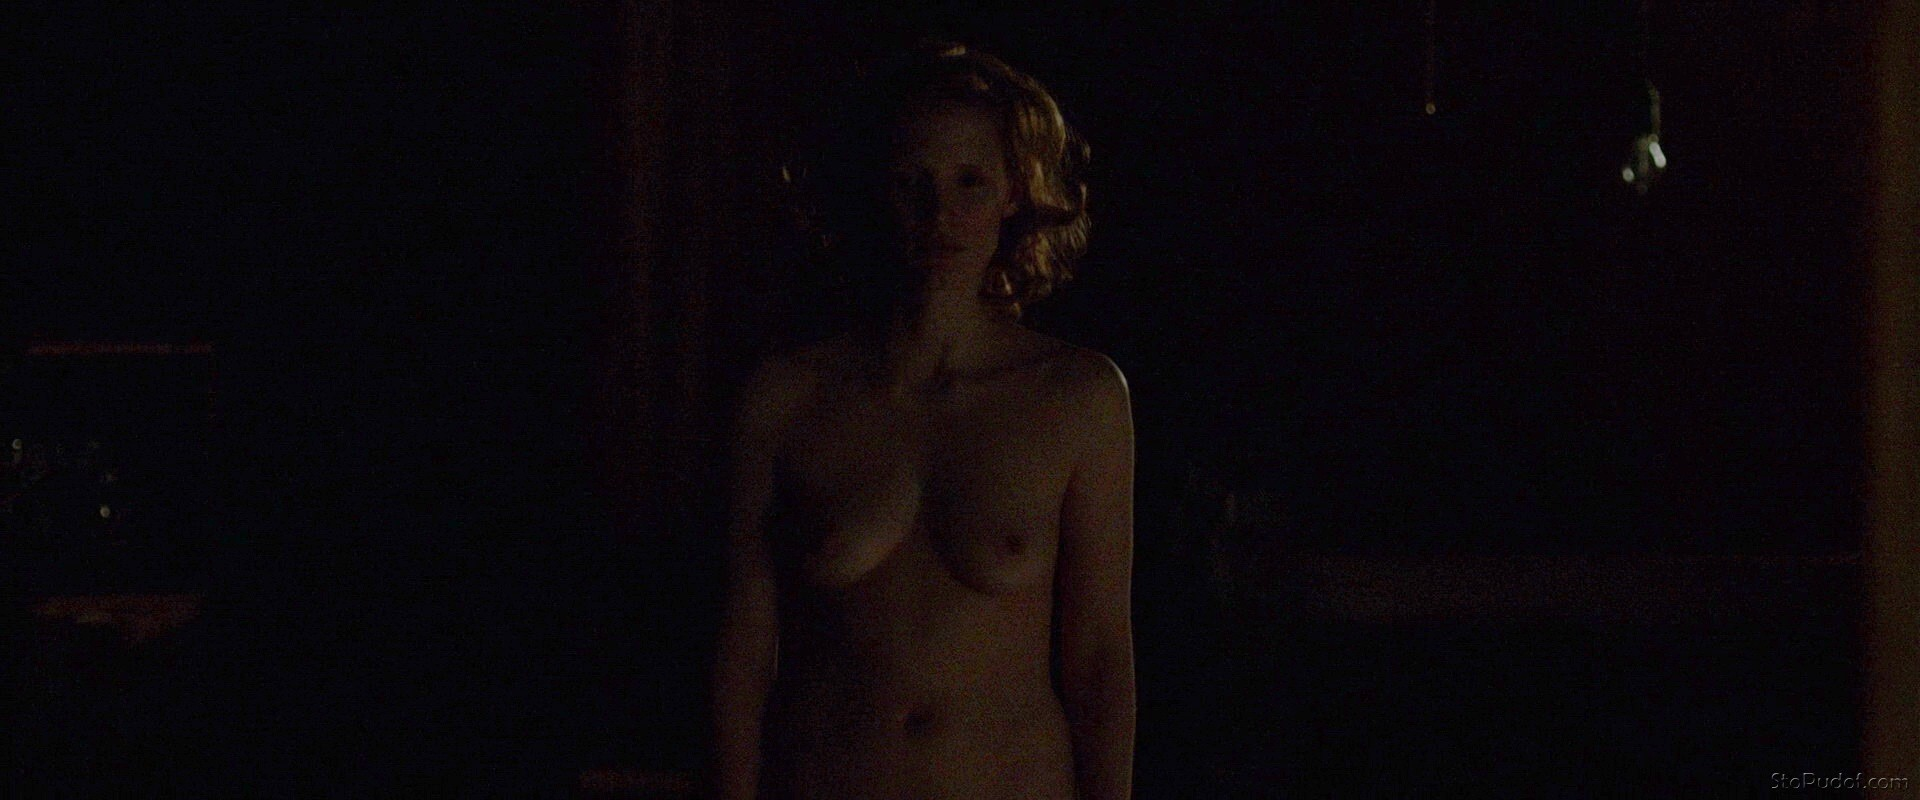 Jessica Chastain leaked nude pictures uncensored - UkPhotoSafari